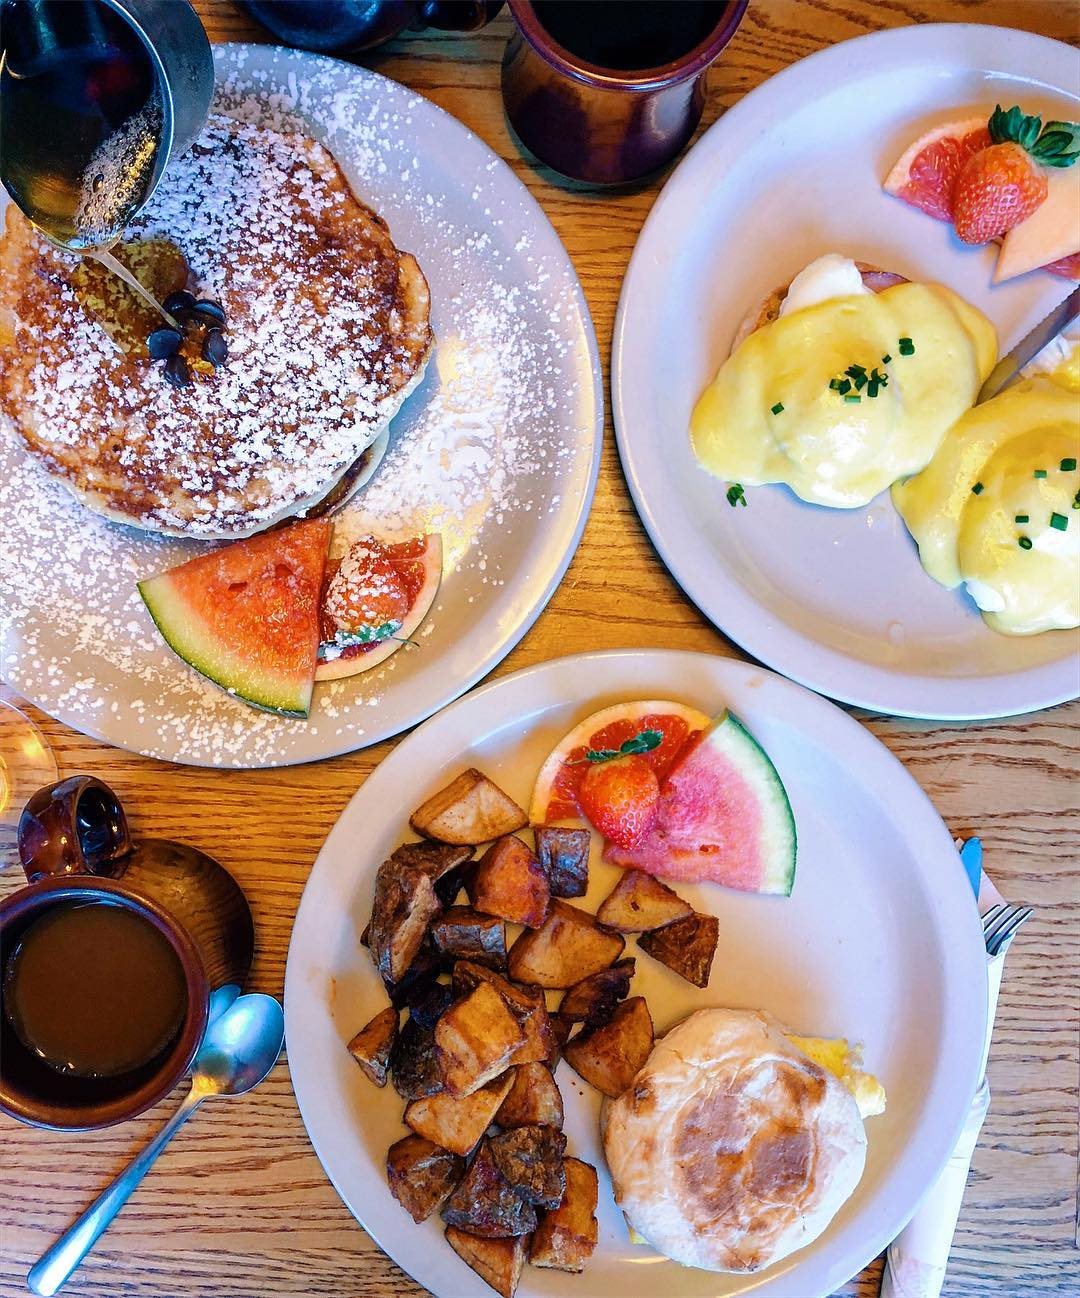 pancakes, homefries, and eggs Benedict. Photo by @foodmoodzz on Instagram